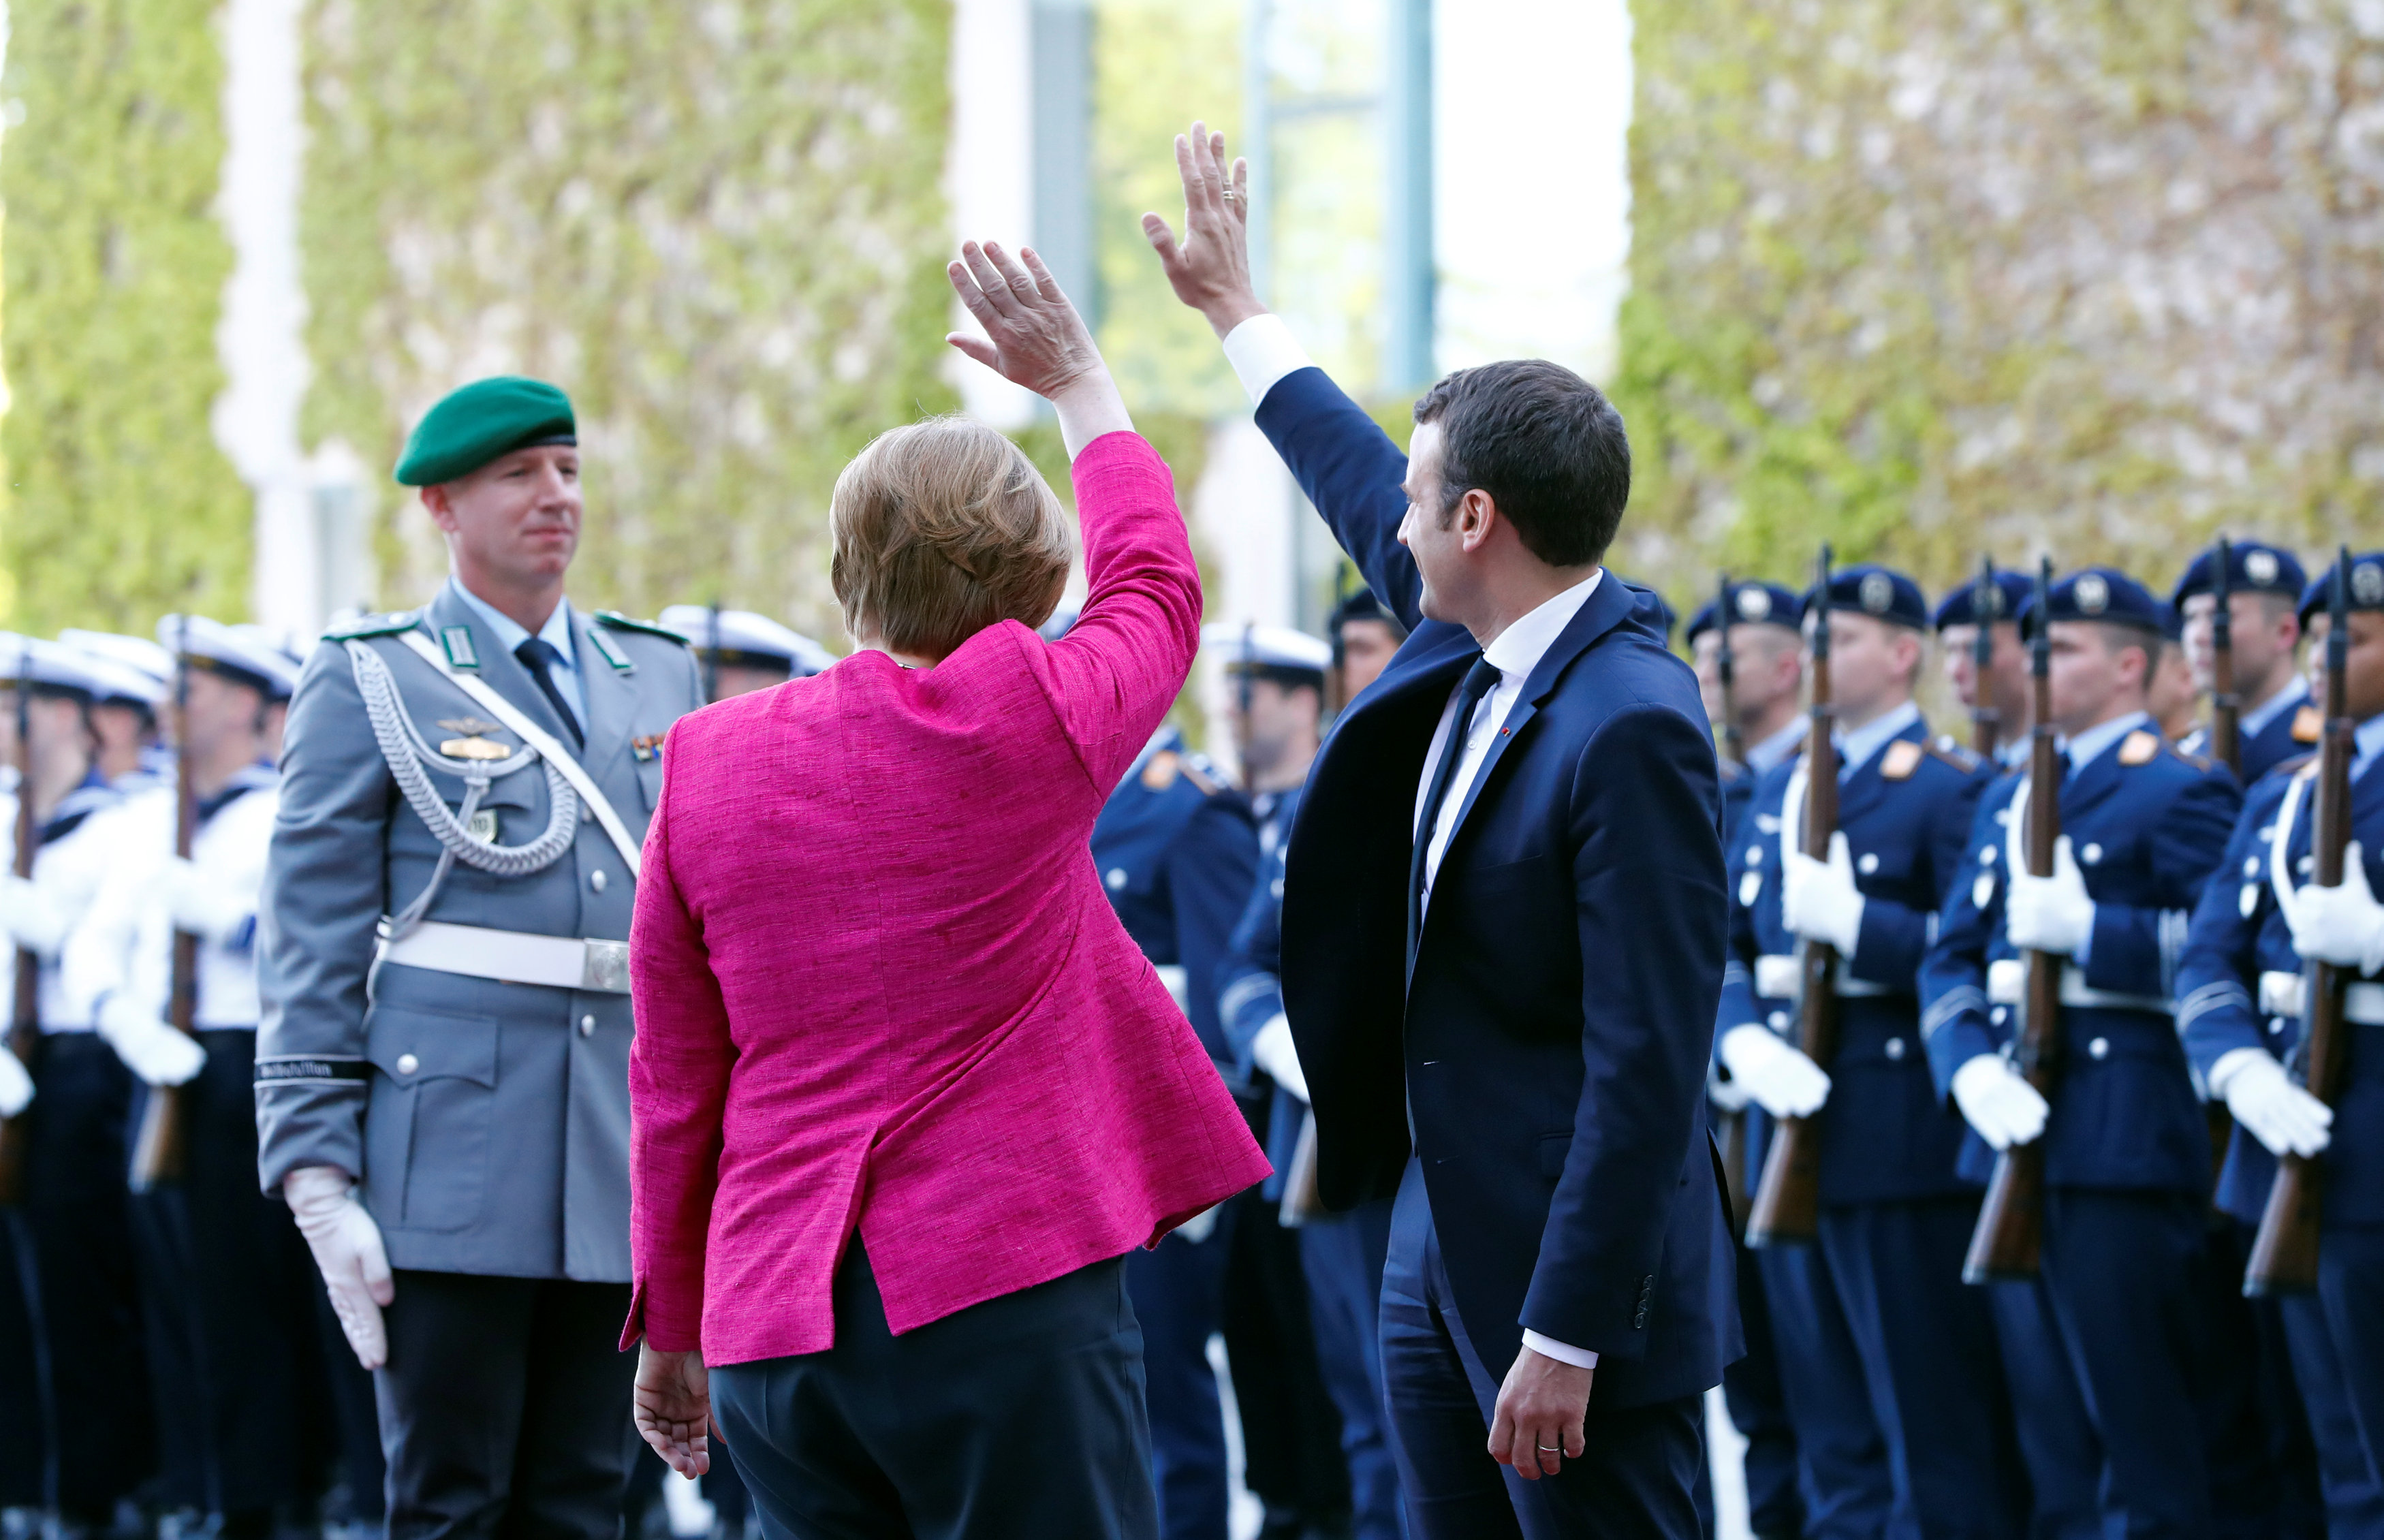 German Chancellor Angela Merkel and French President Emmanuel Macron greet  at a ceremony at the Chancellery in Berlin, Germany on May 15, 2017.    (REUTERS/Fabrizio Bensch)